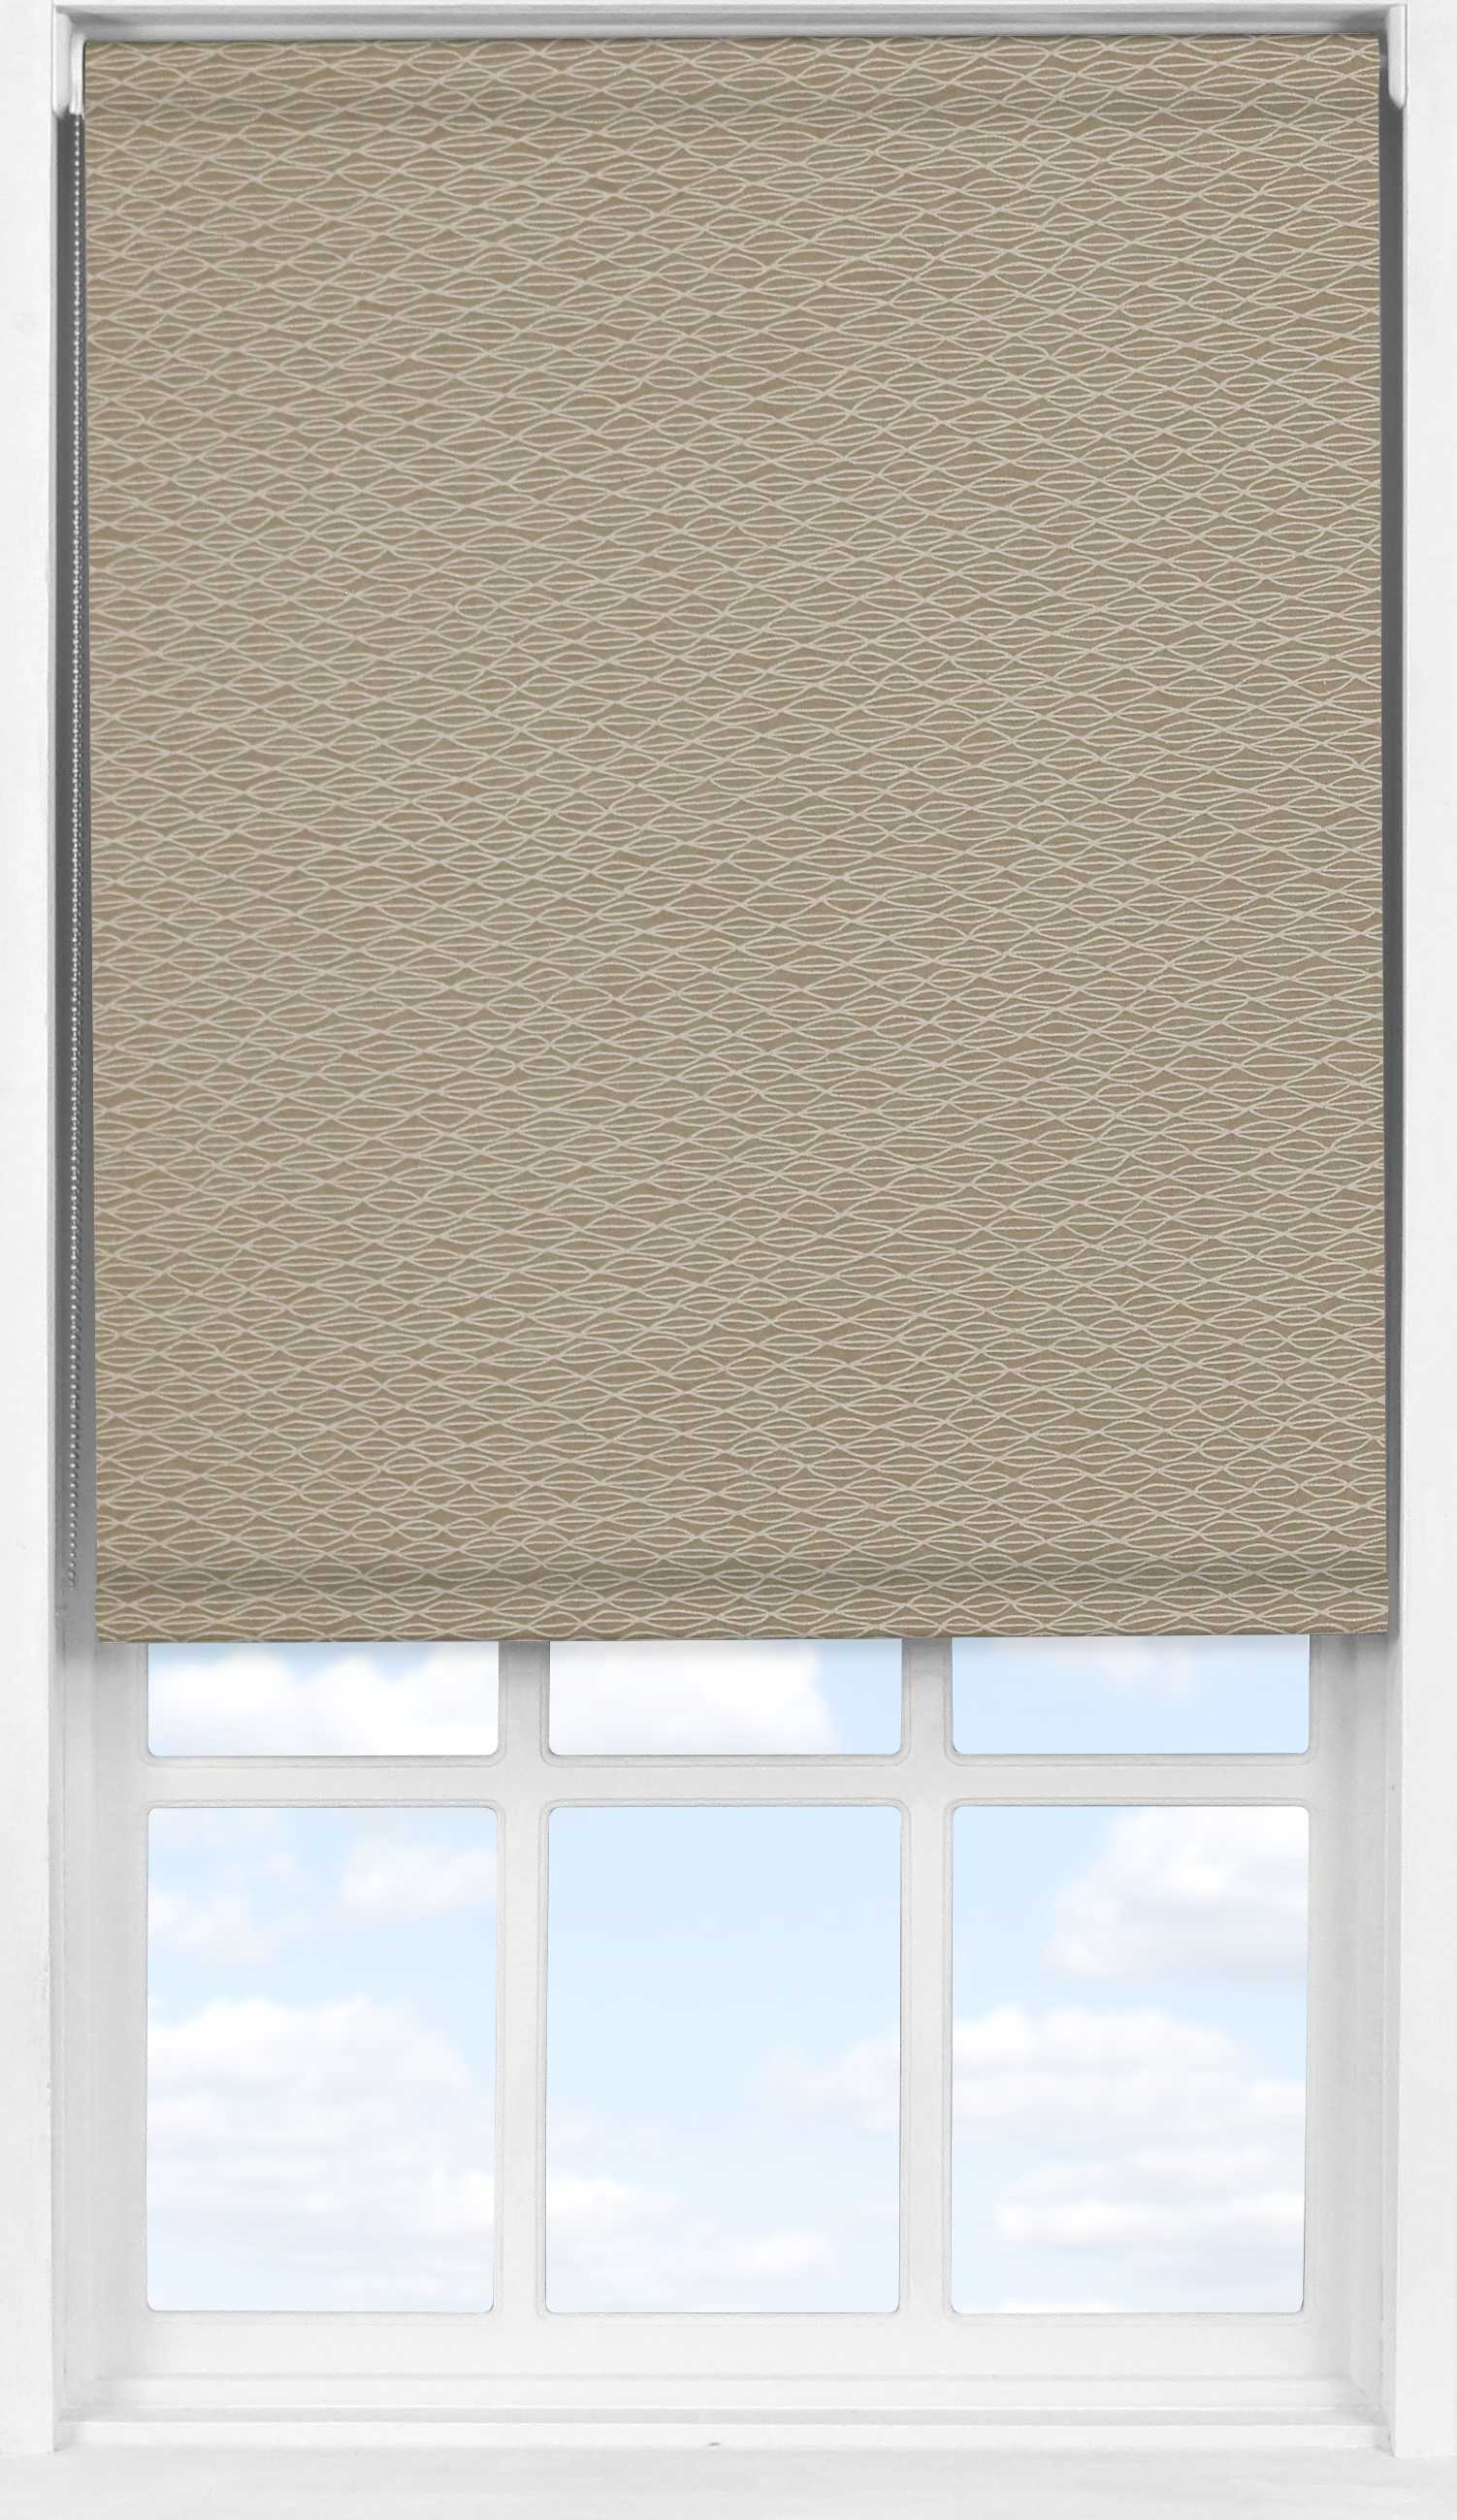 Easifit Roller Blind in Natural Shell Transparent